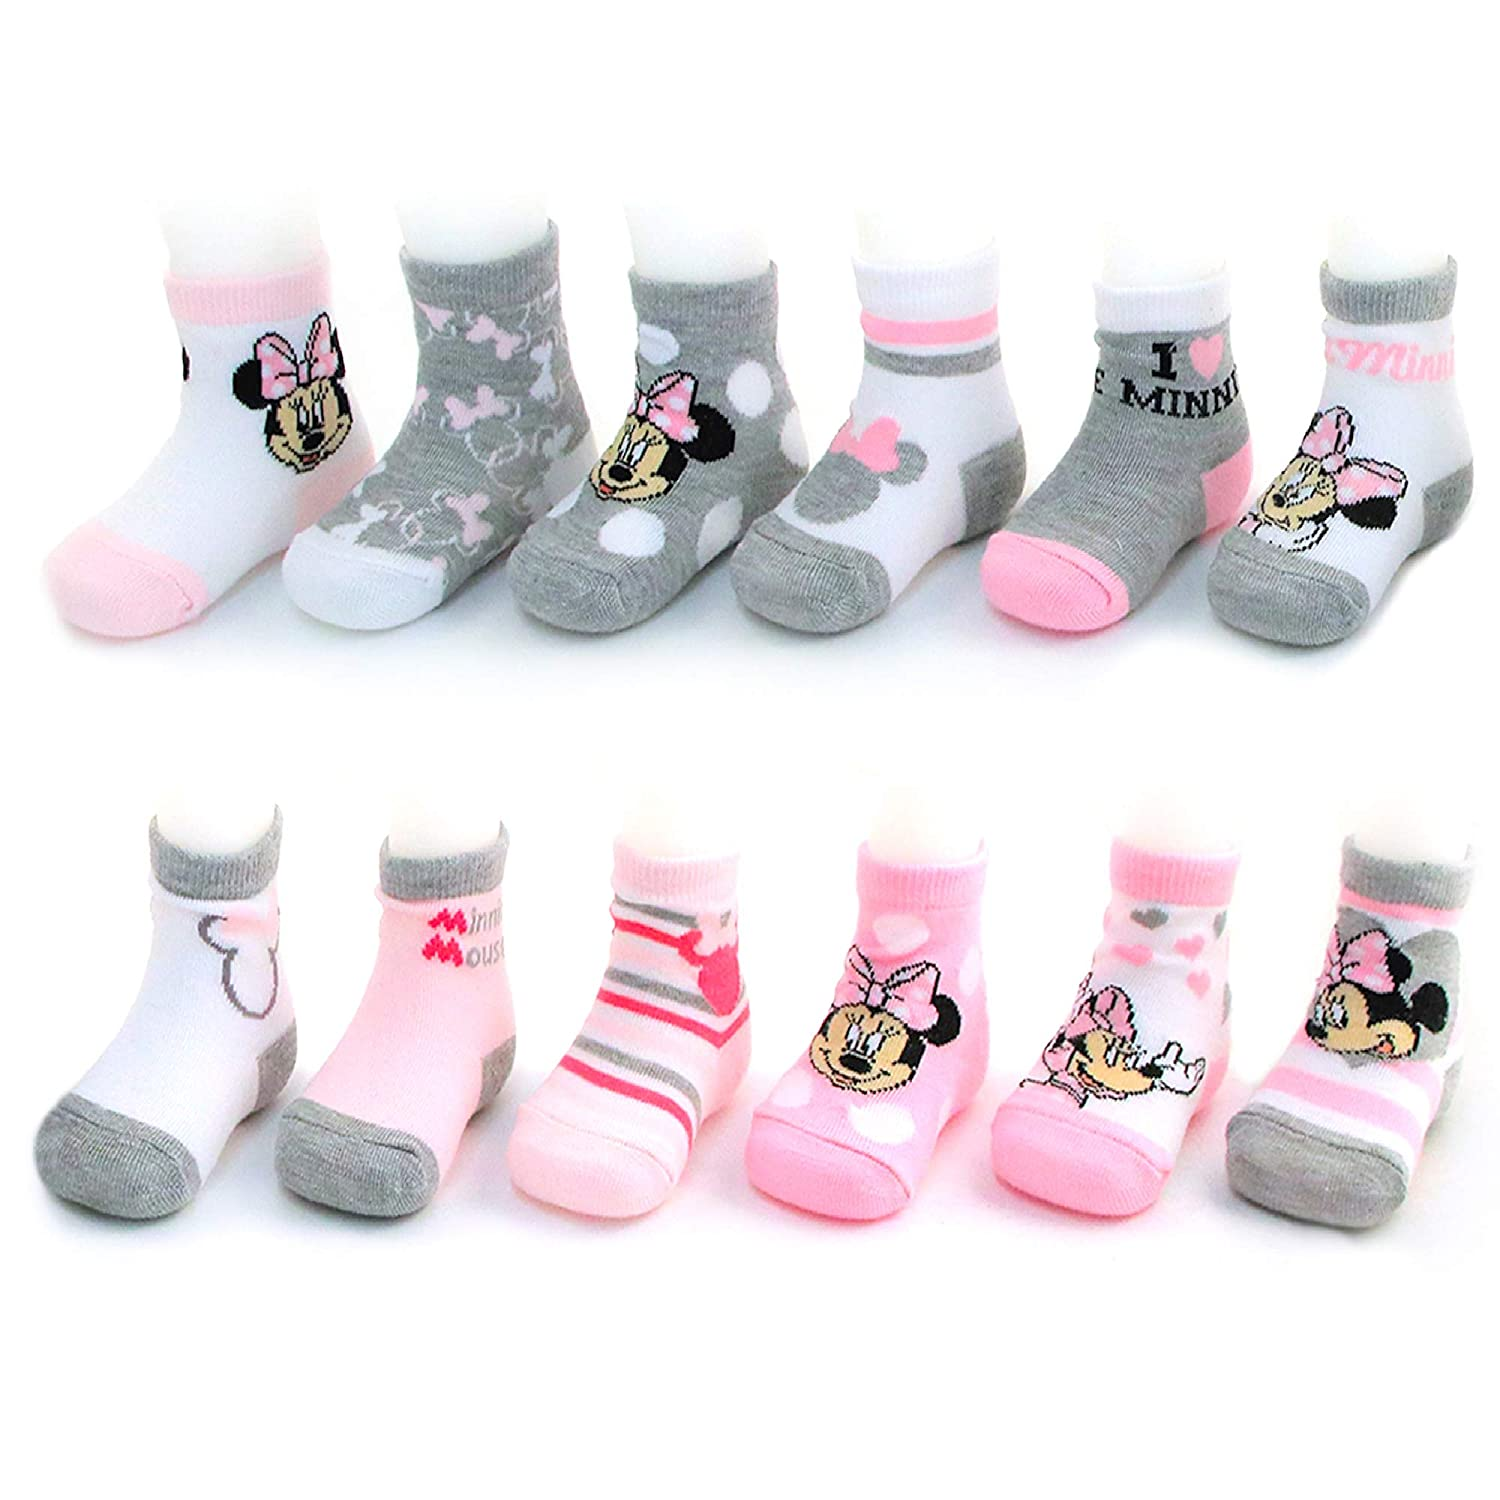 Disney Baby Girl Socks- Assorted Minnie Mouse Designs 12 Pack Baby Socks Variety Set, Age 0-24 Months